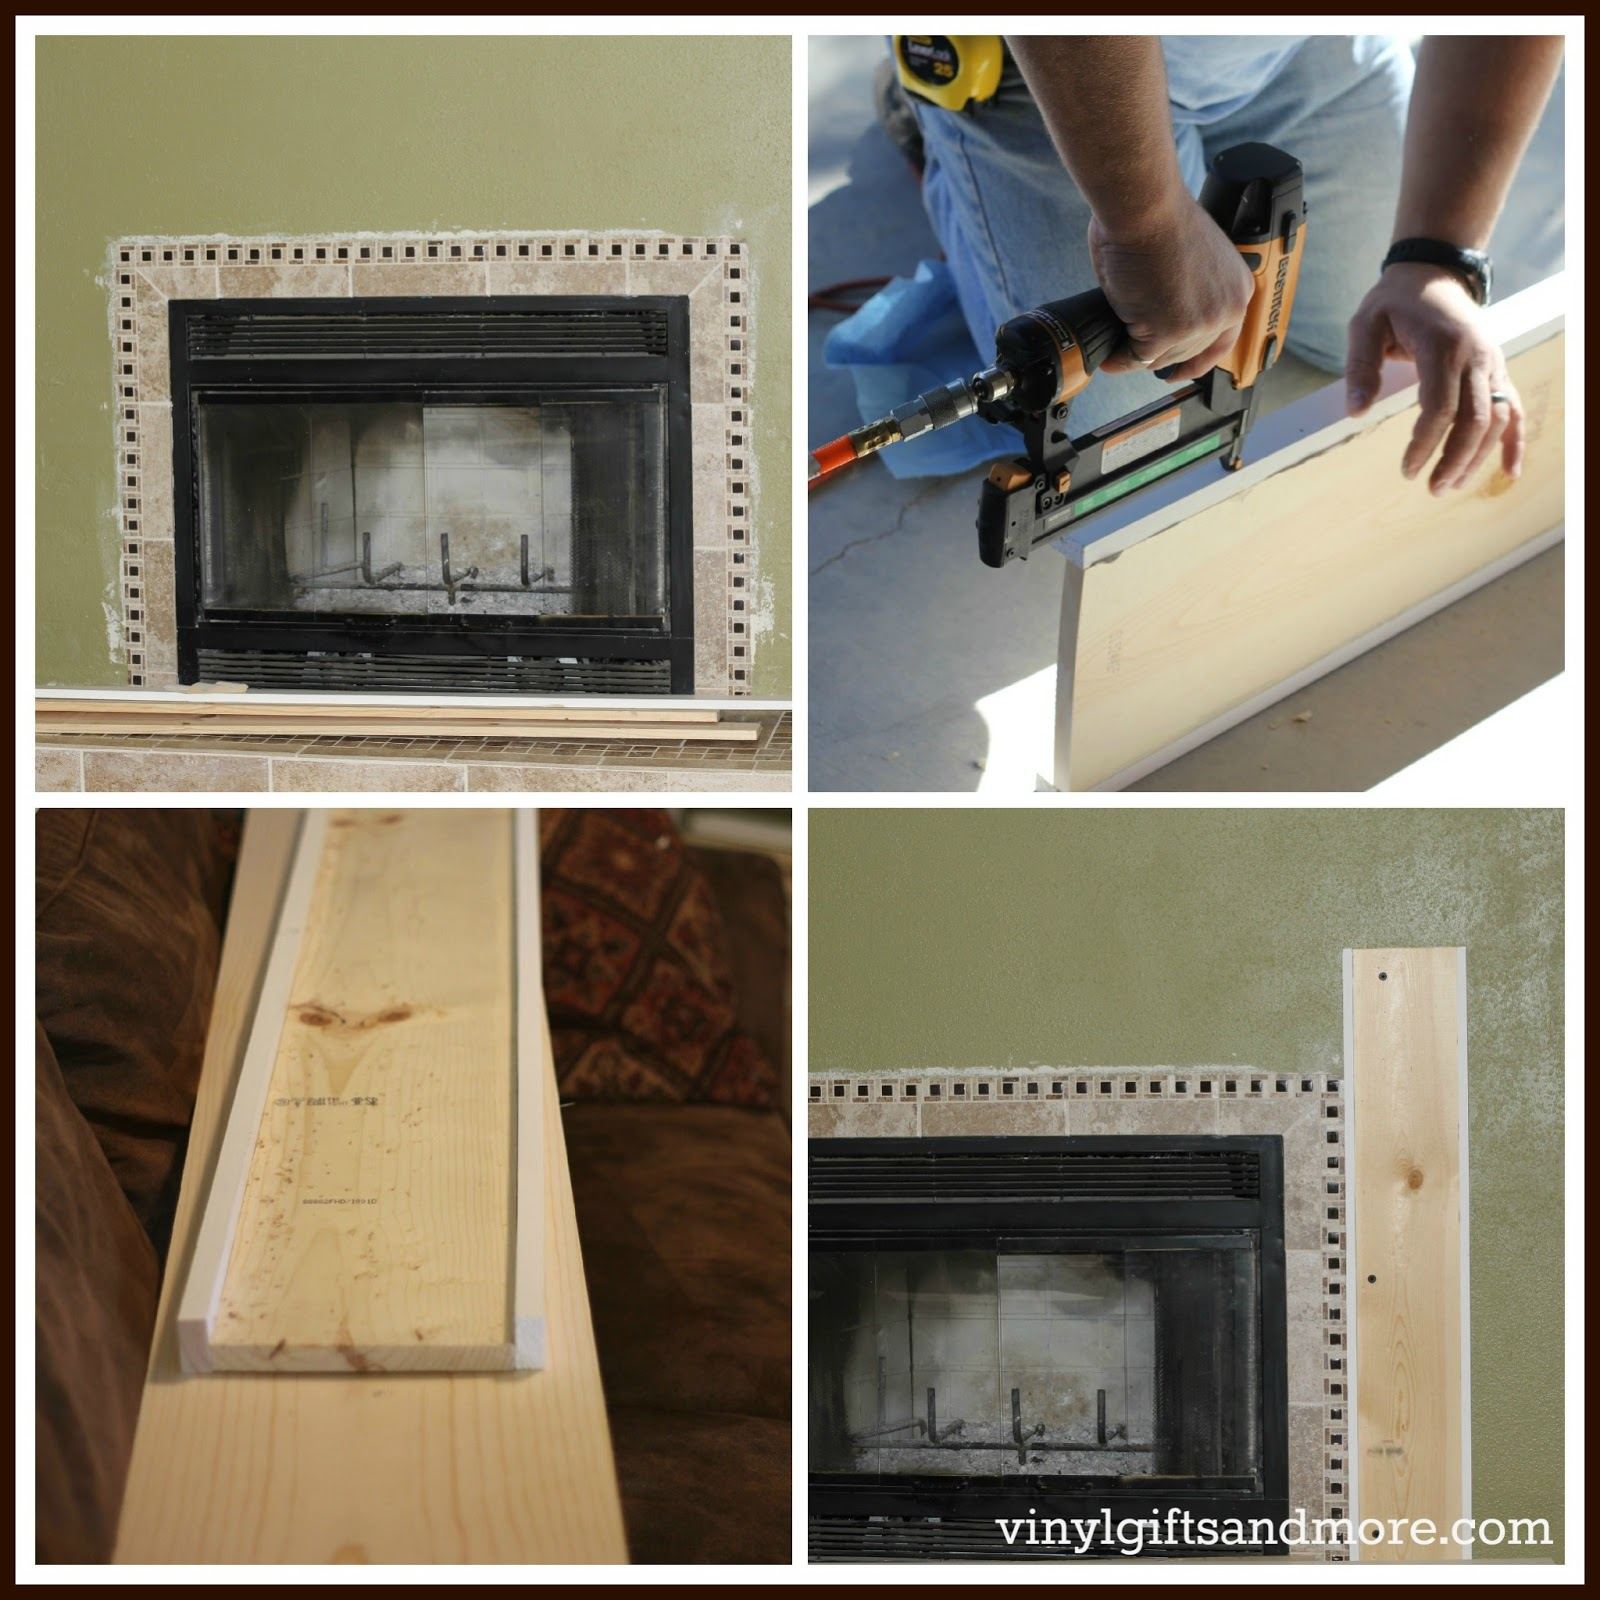 Super Saturday Crafts: Fireplace Remodel